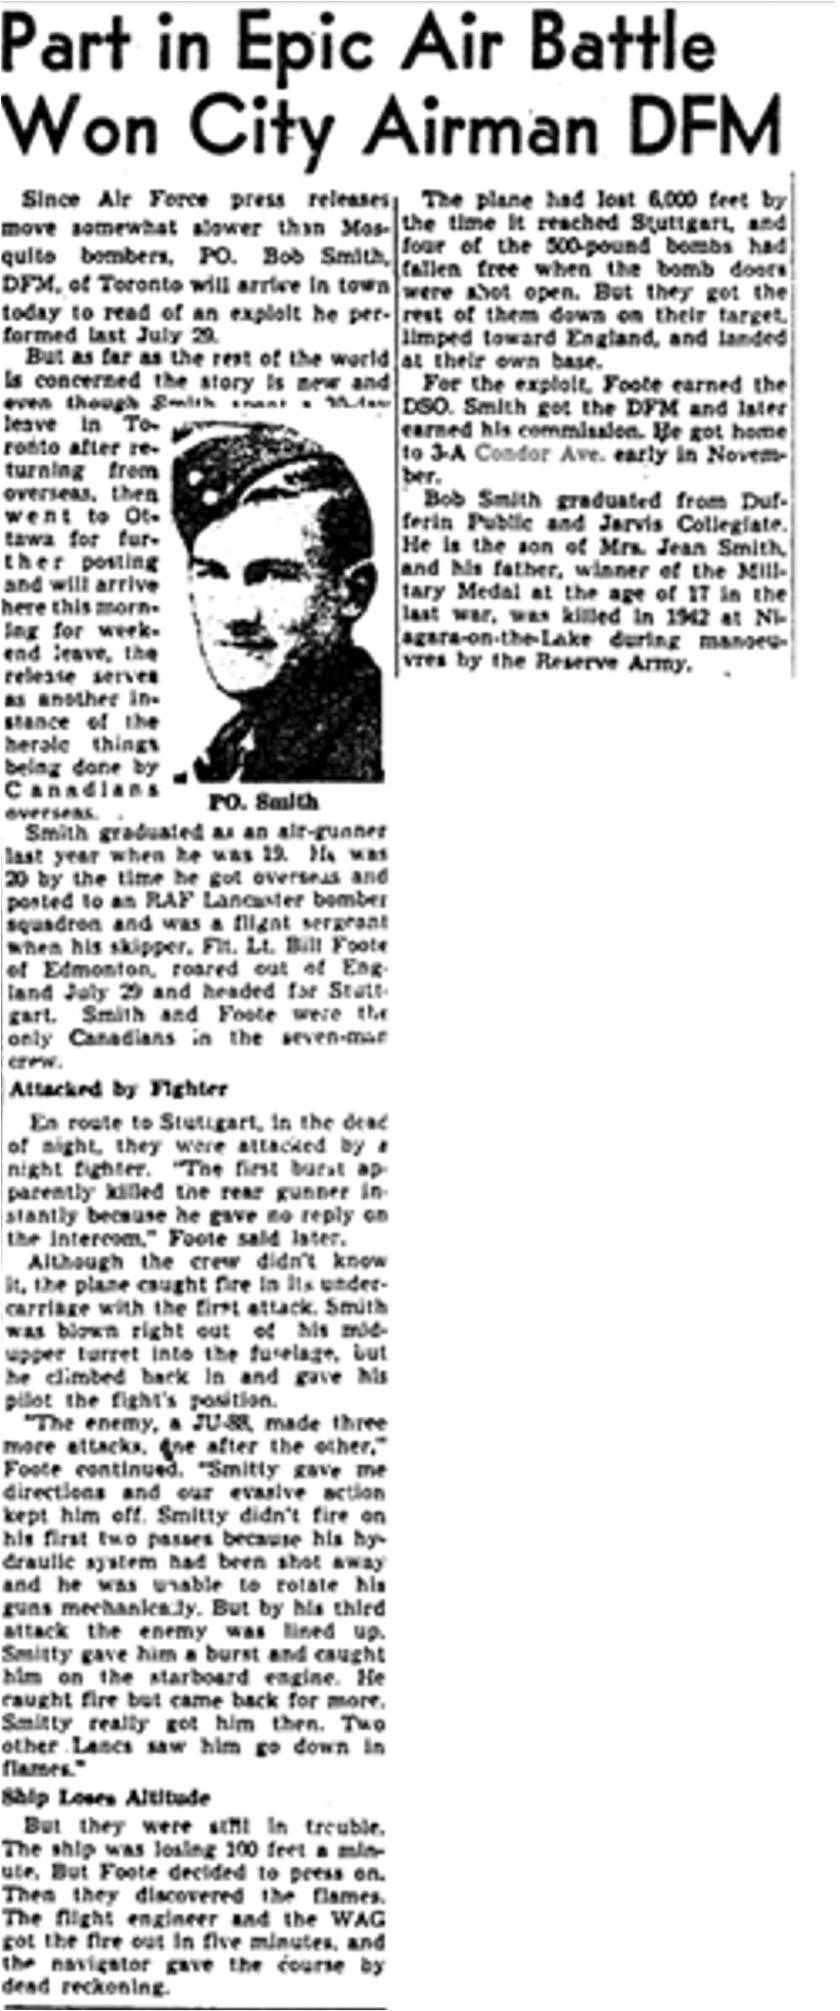 Globe and Mail, 09 Dec 1944 Condor Ave